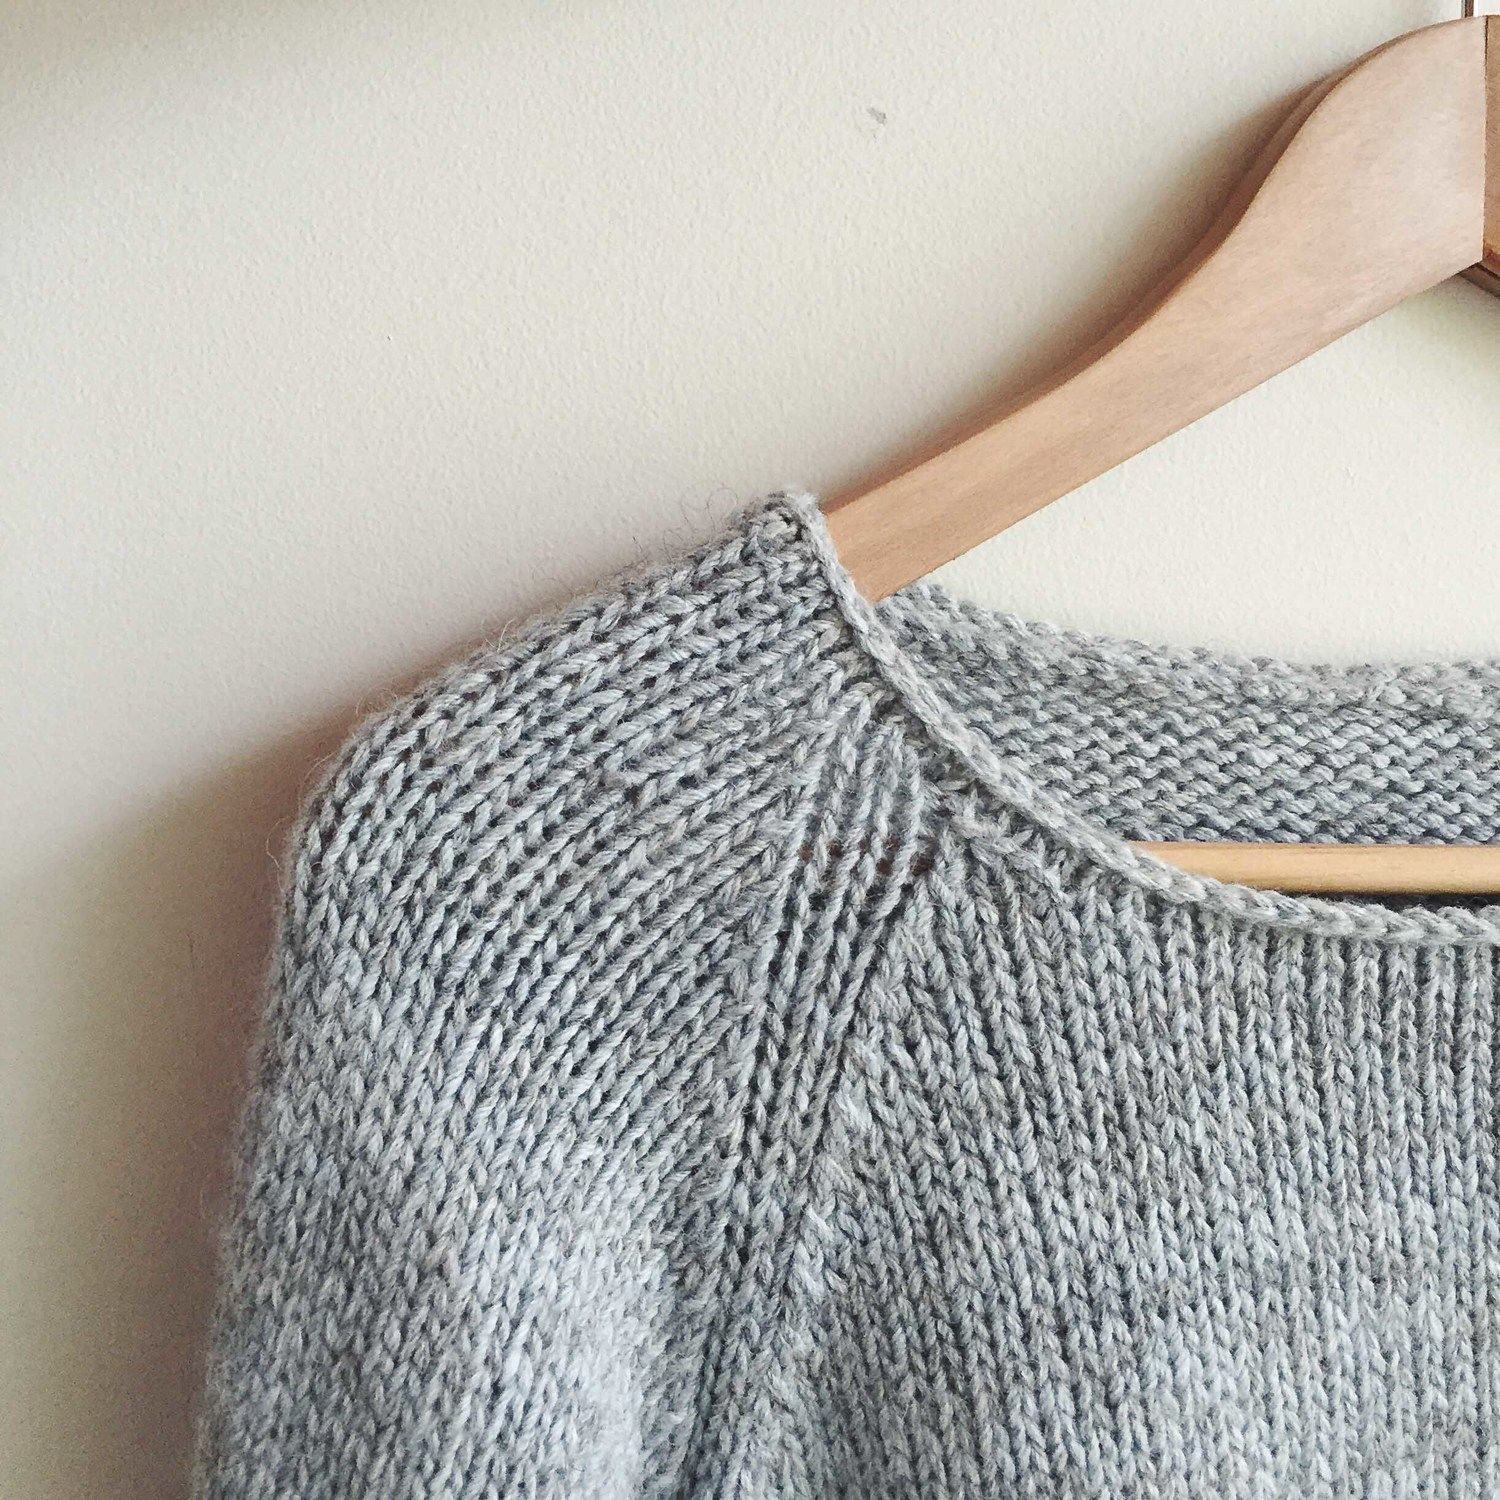 1793bbbb940d How to knit a simple neckline   Knitting   Pinterest   Tricot ...